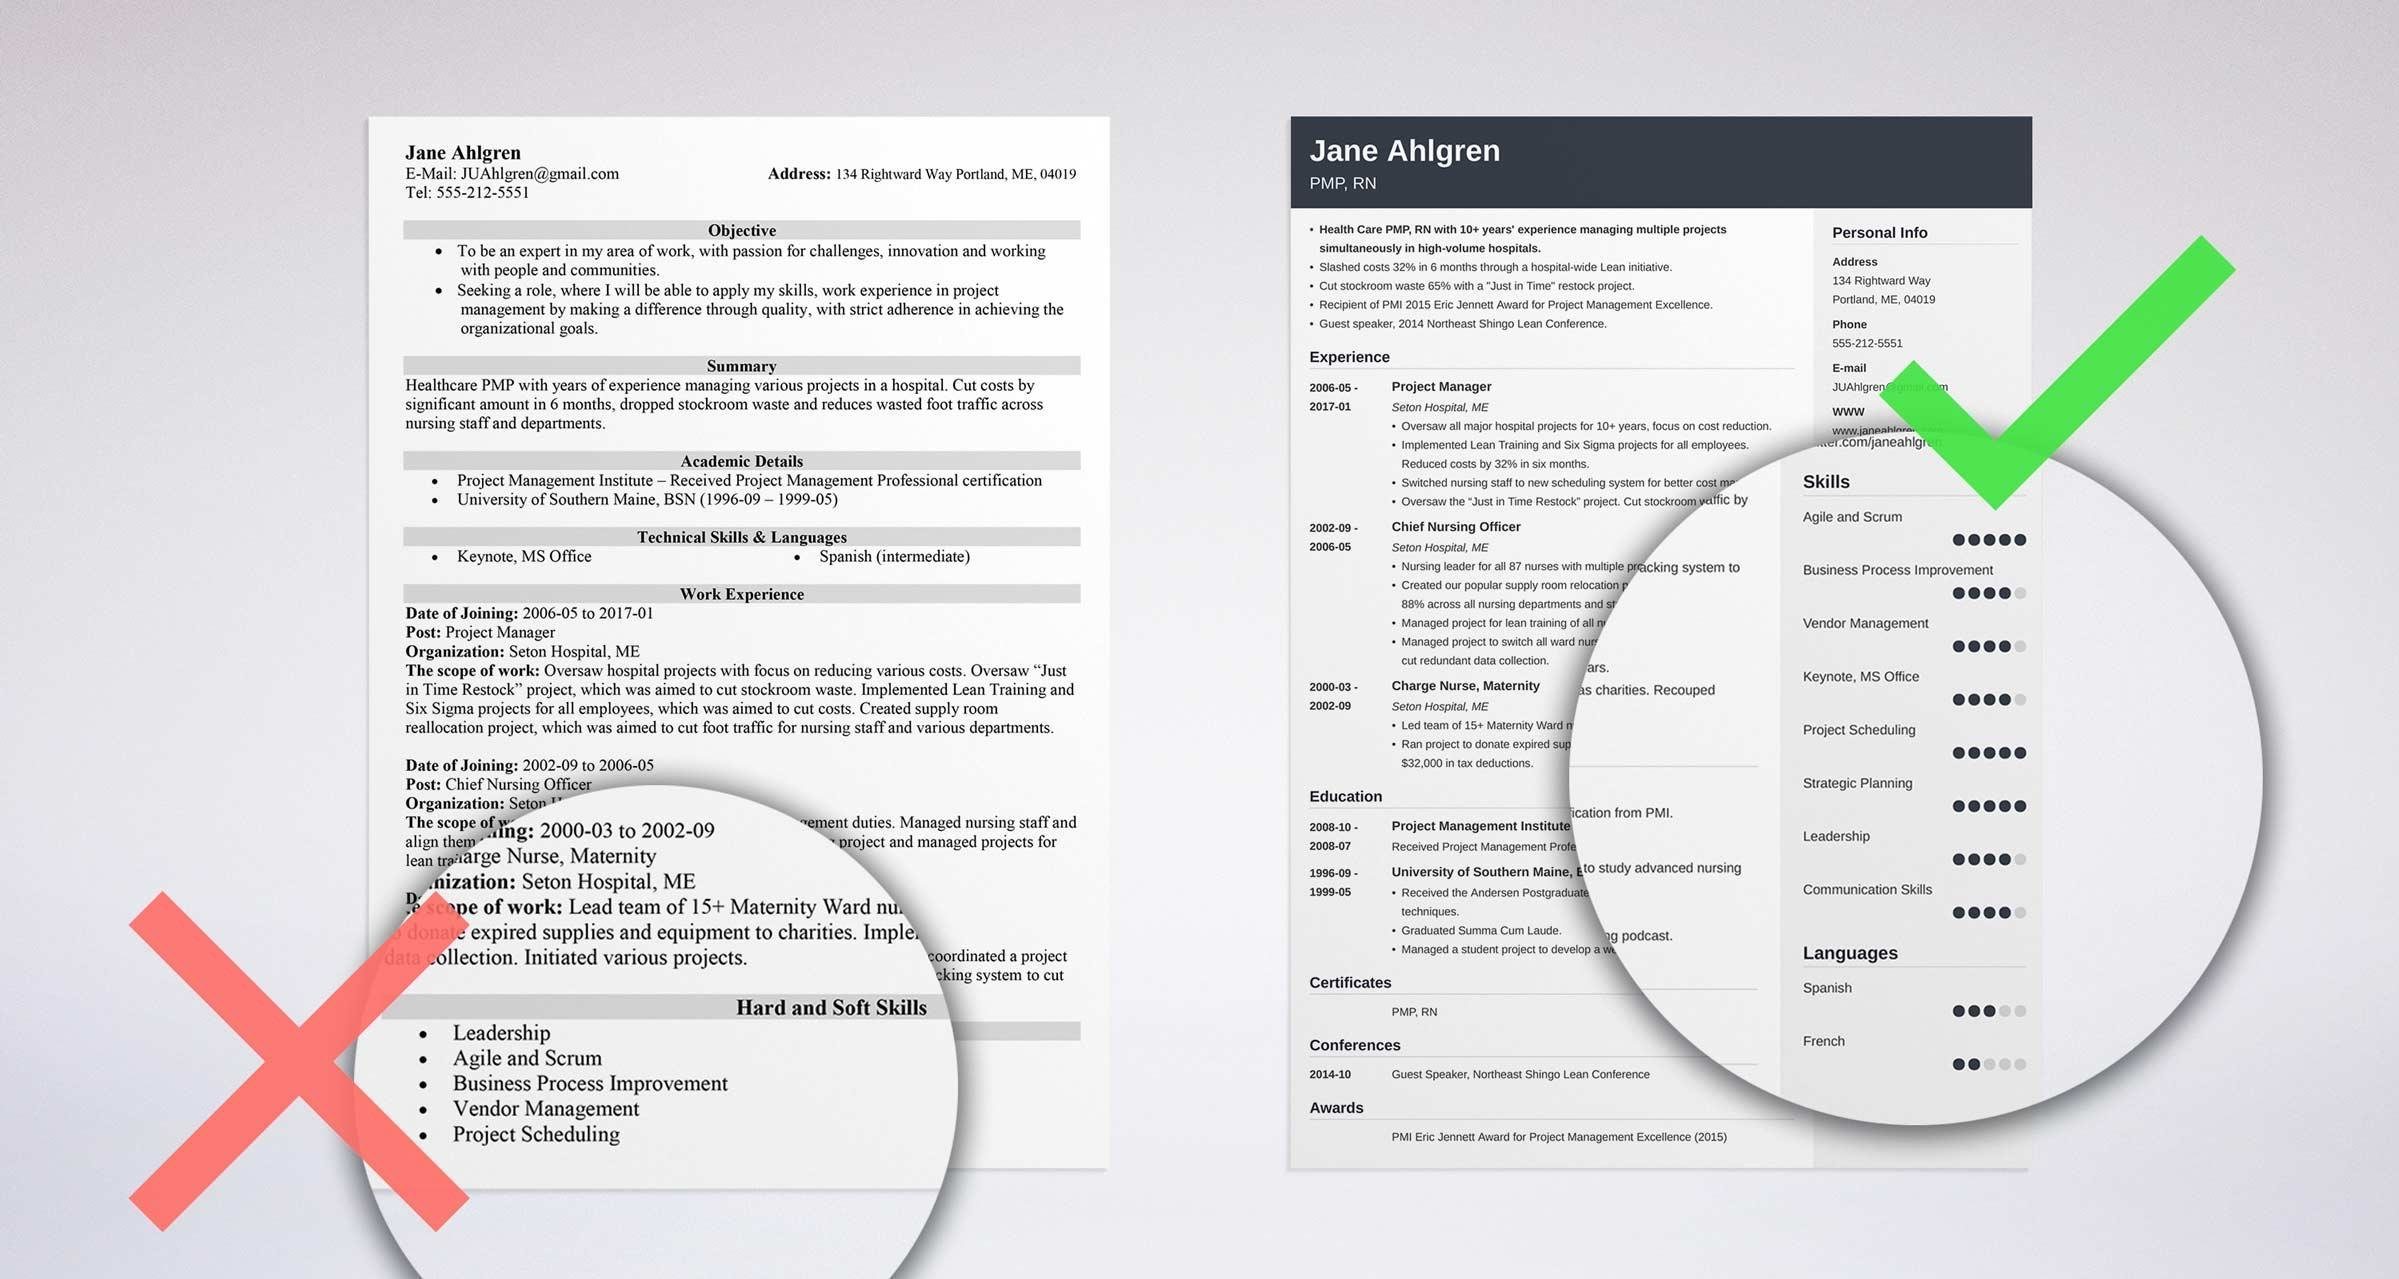 transferable skills definition examples for resume checklist of on resume1 core Resume Resume Checklist Of Transferable Skills